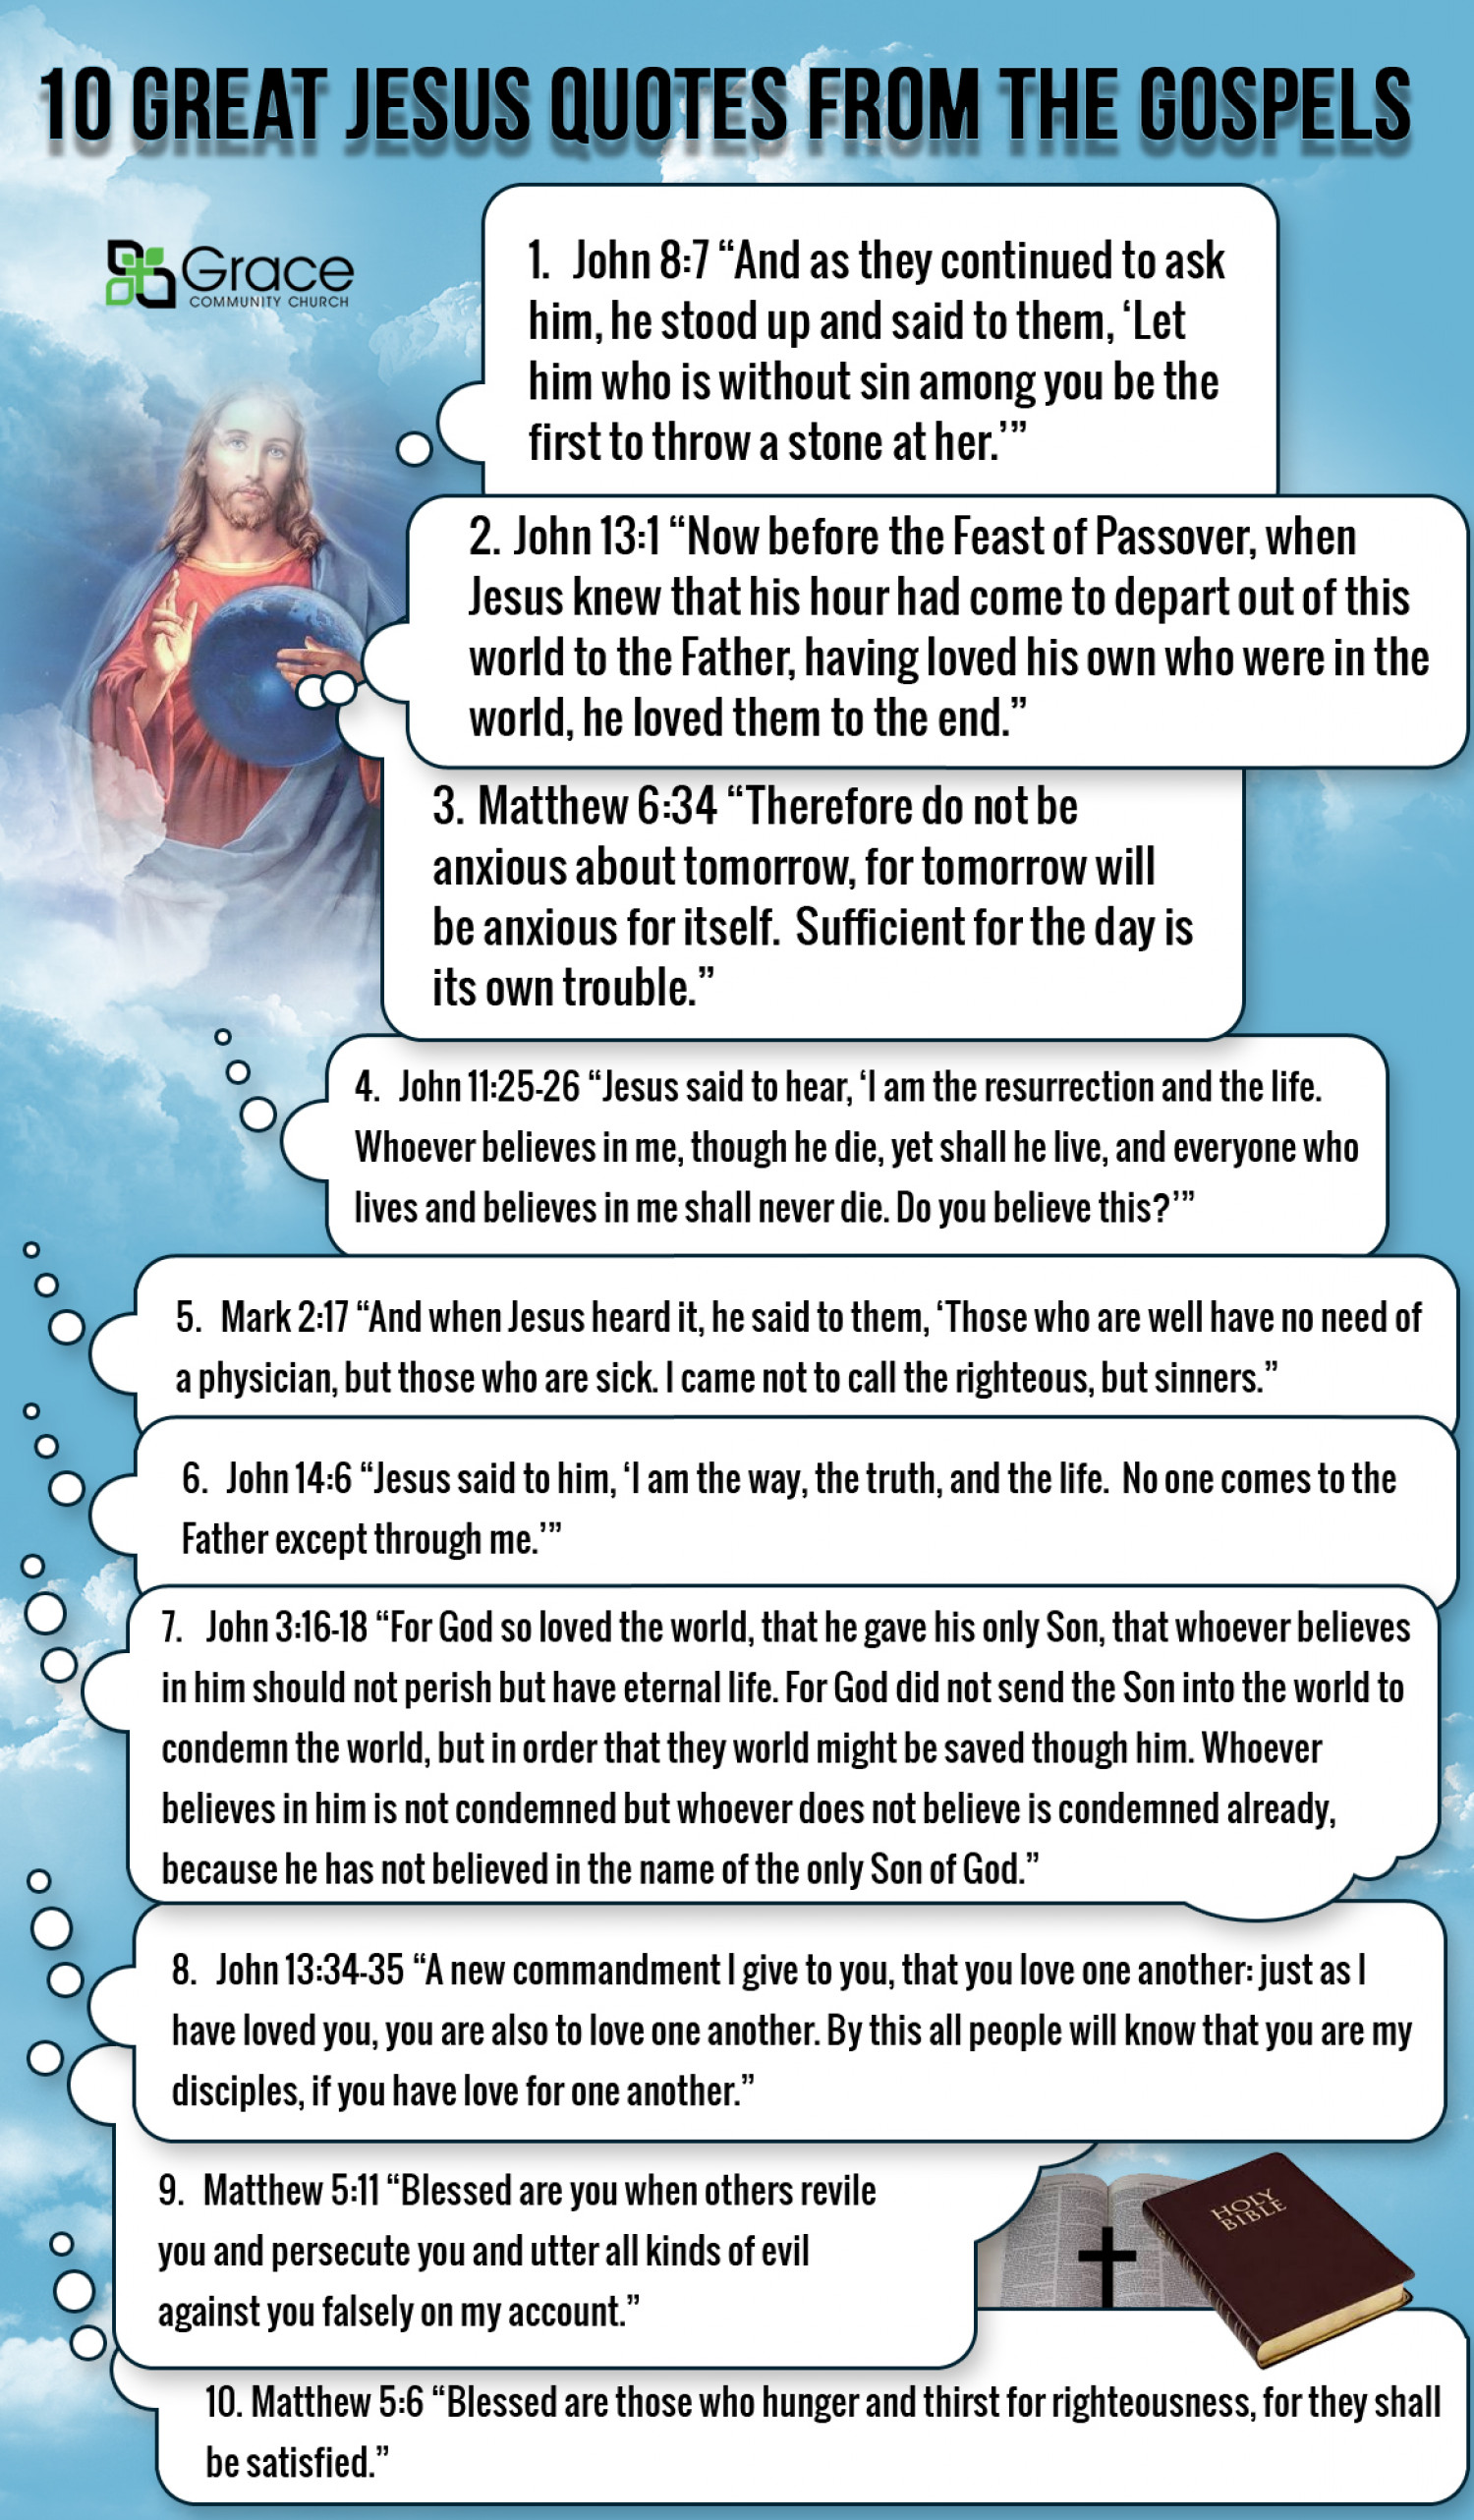 Quotes Jesus 10 Great Jesus Quotes From The Gospels  Visual.ly